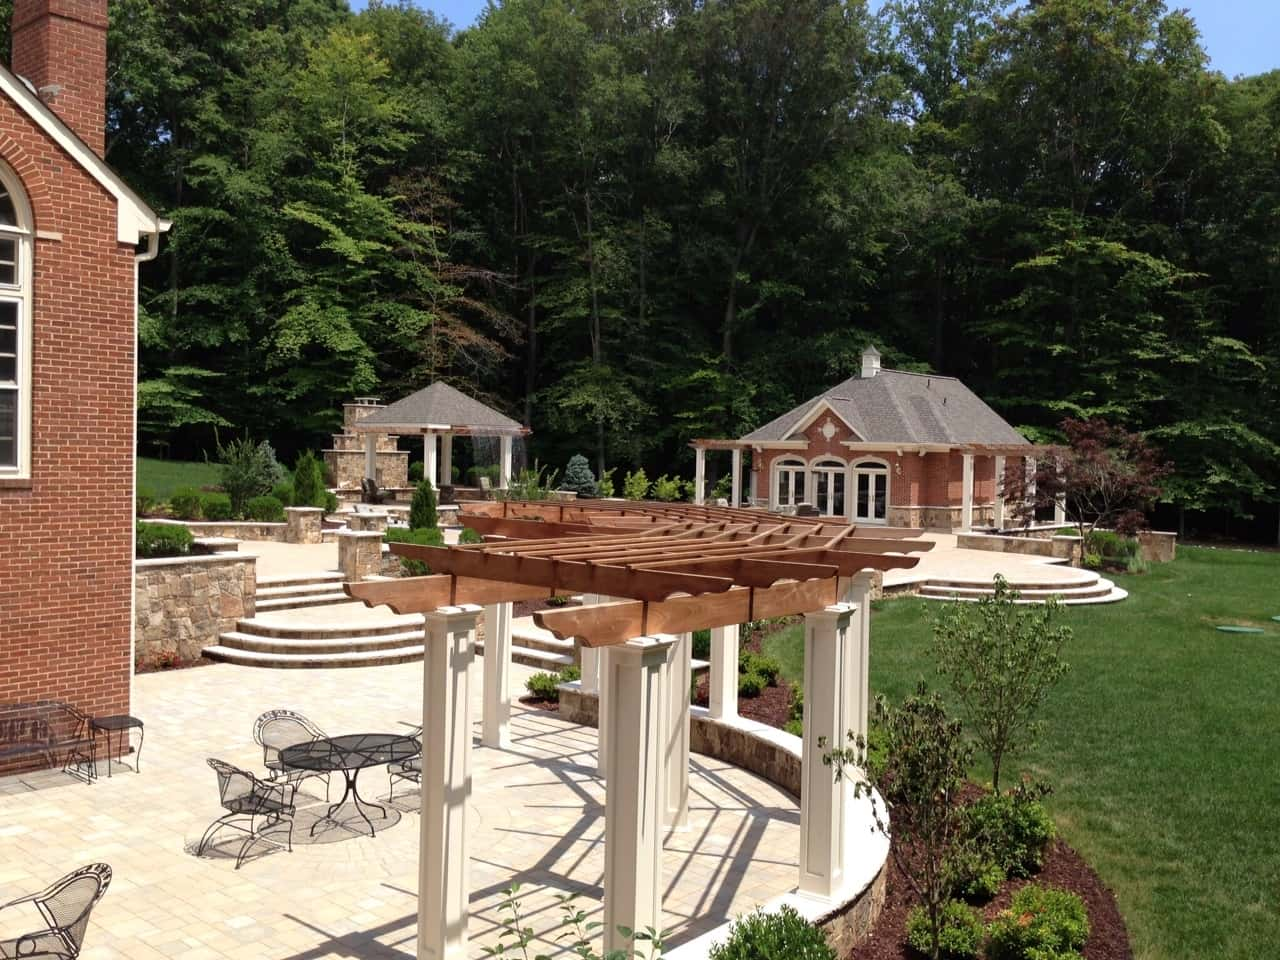 Custom Pergolas, Pool House, Arden on the Severn